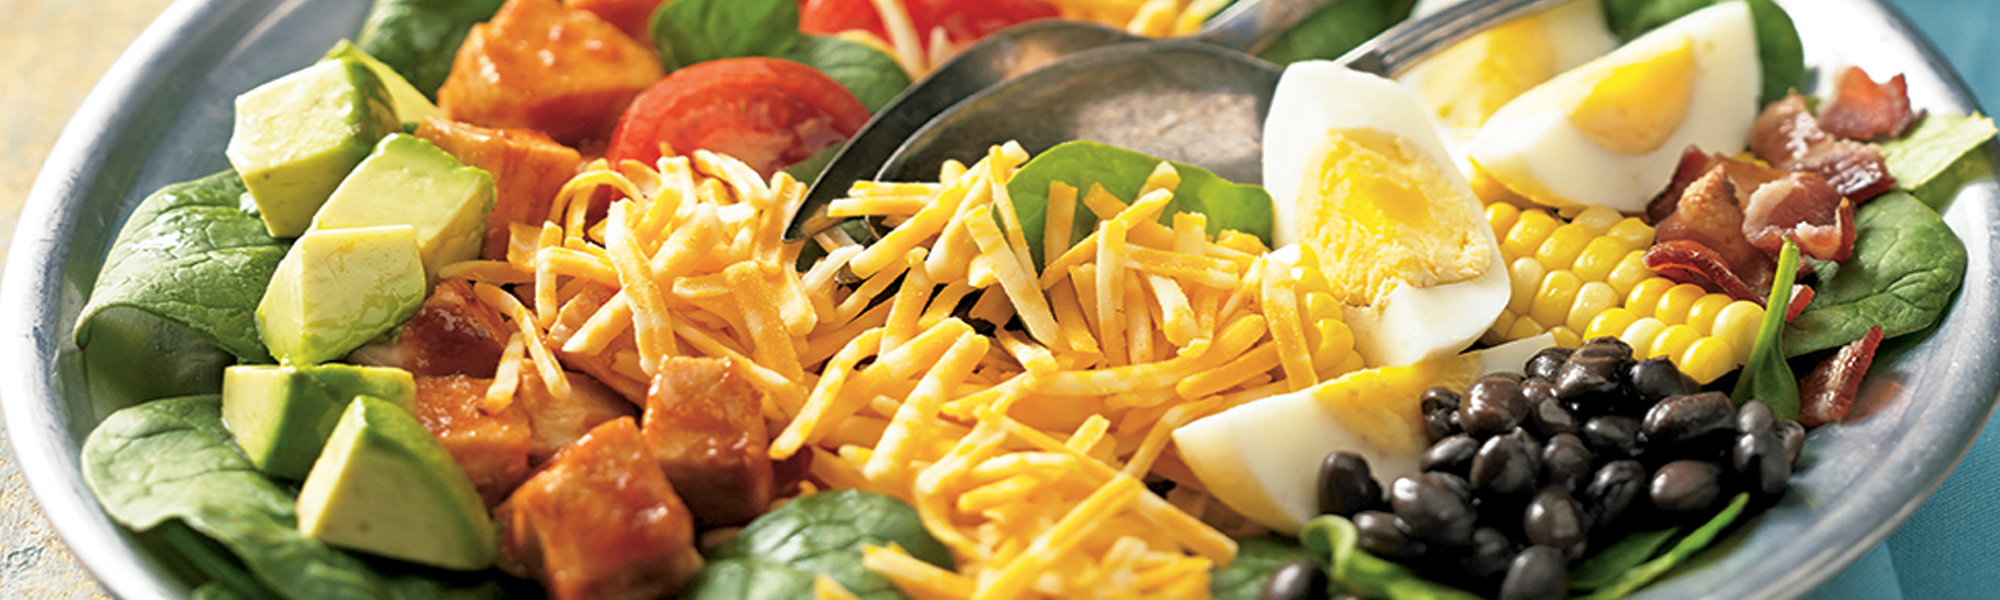 Salad with cheese blends